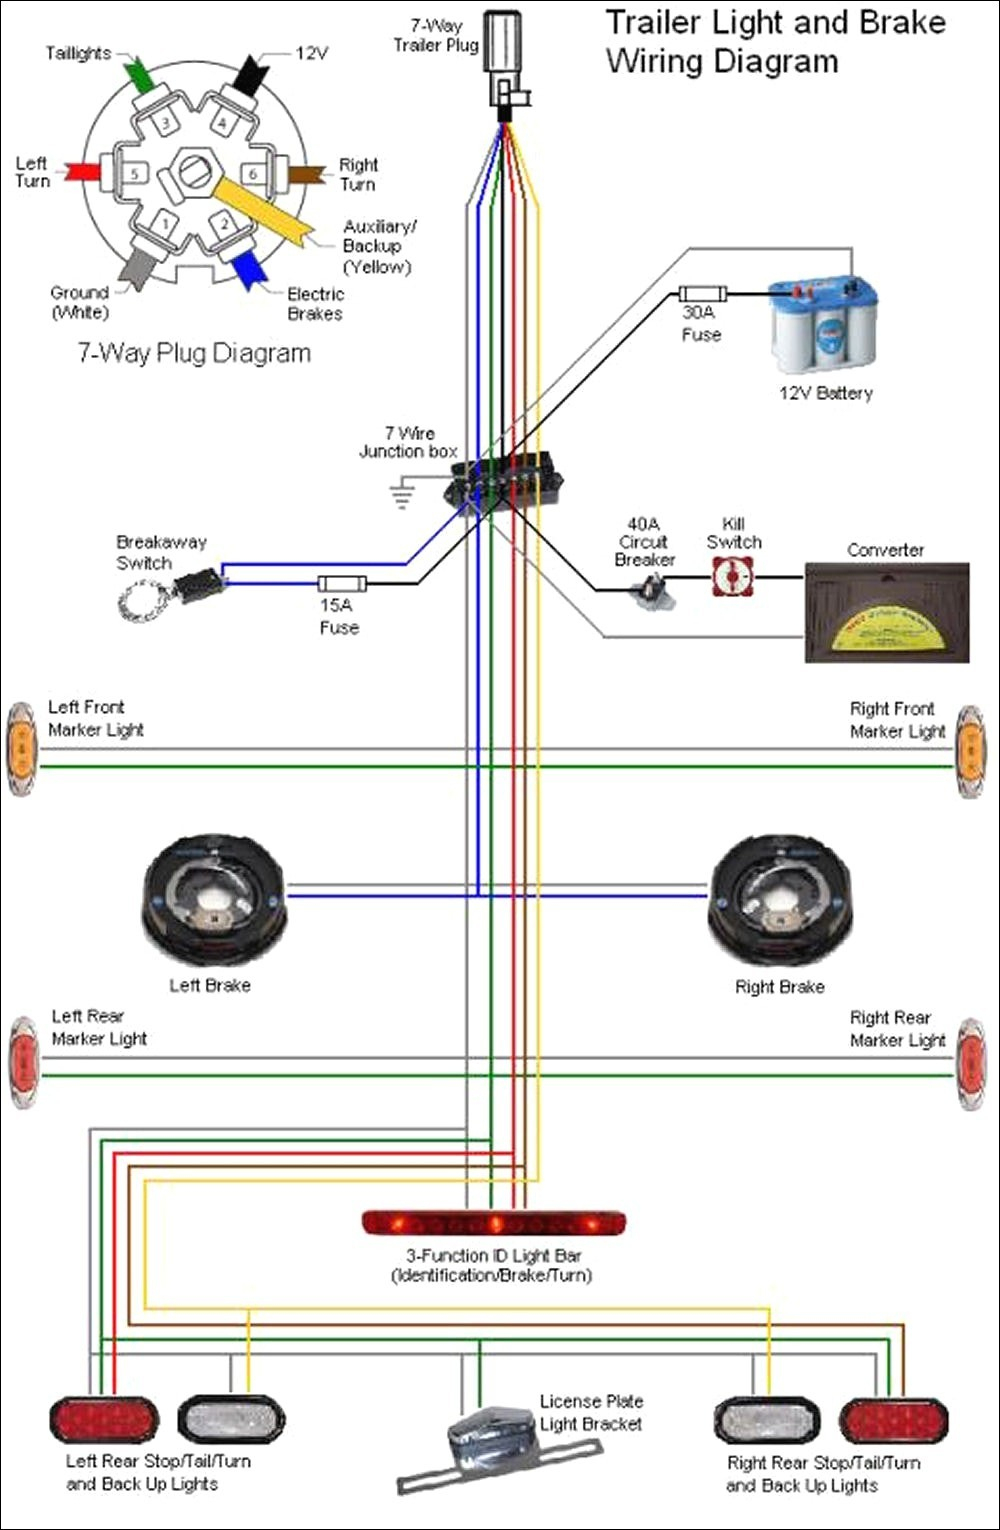 7 Wire Harness | Wiring Diagram - 7 Pin Trailer Wiring Diagram Electric Brakes